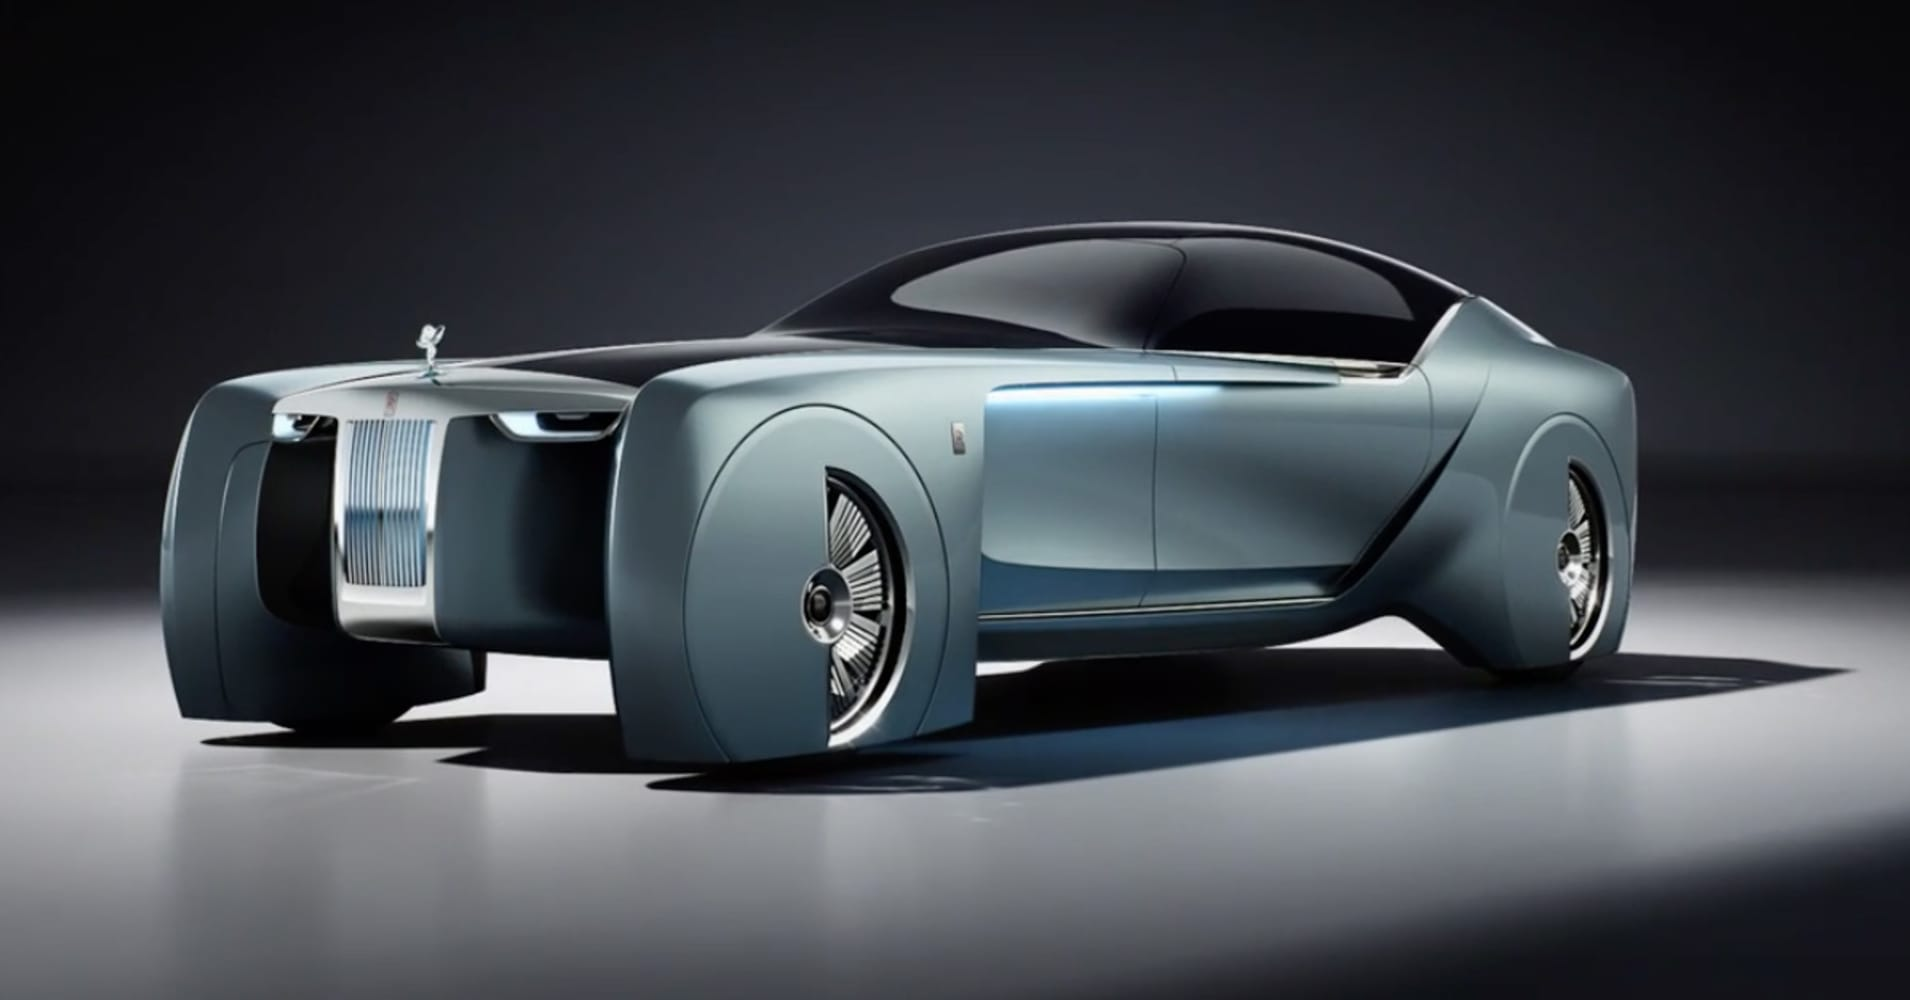 Roles Royal Car Wallpaper Rolls Royce Ditches The Chauffeur In This Futuristic